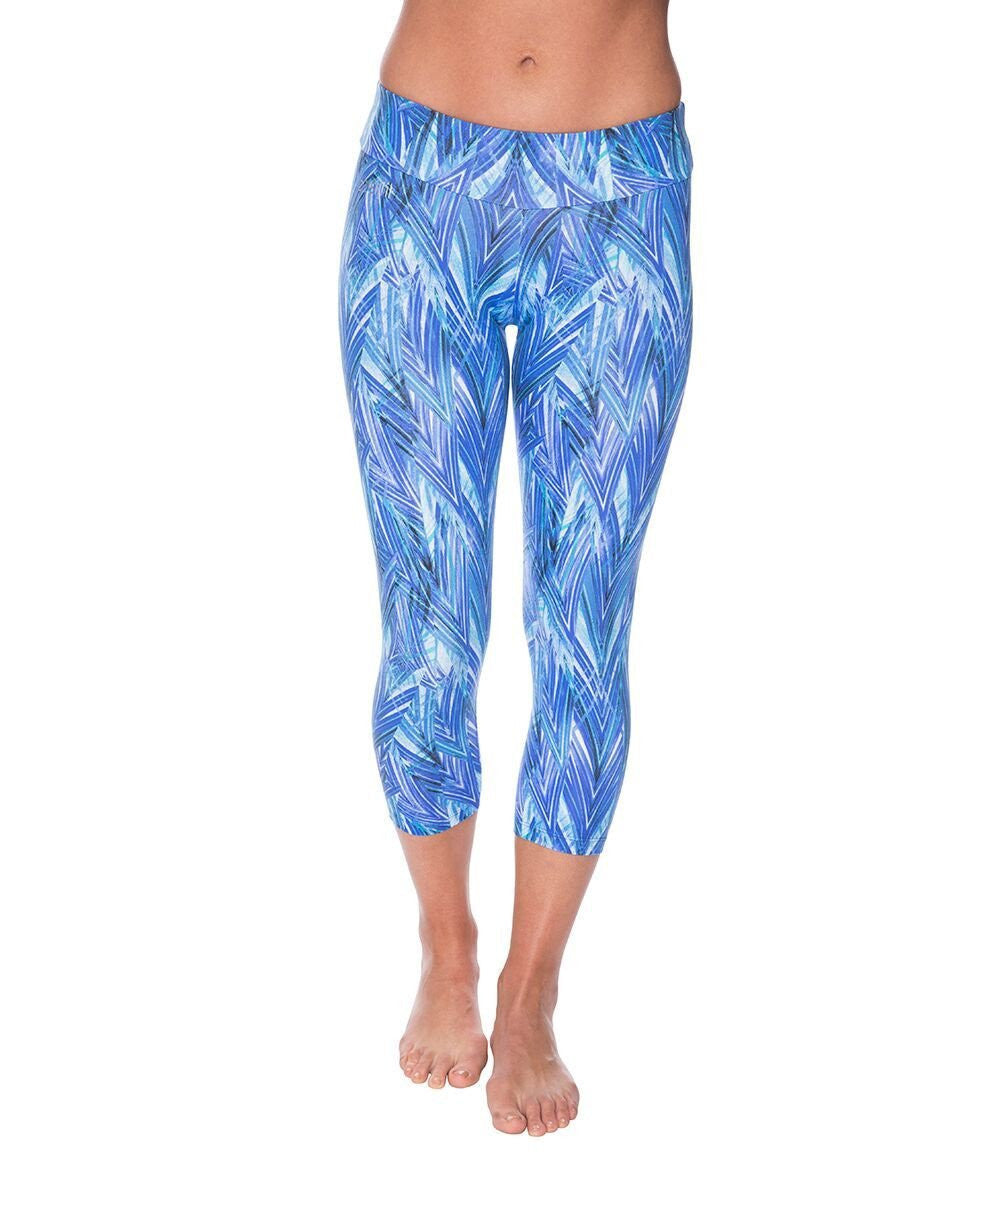 Side view product image for Brasilfit Jodhpur calf length activewear leggings.  Jodhpur leggings are part of our premium printed activewear collection that is focused on performance, high compression activewear with colourful prints.